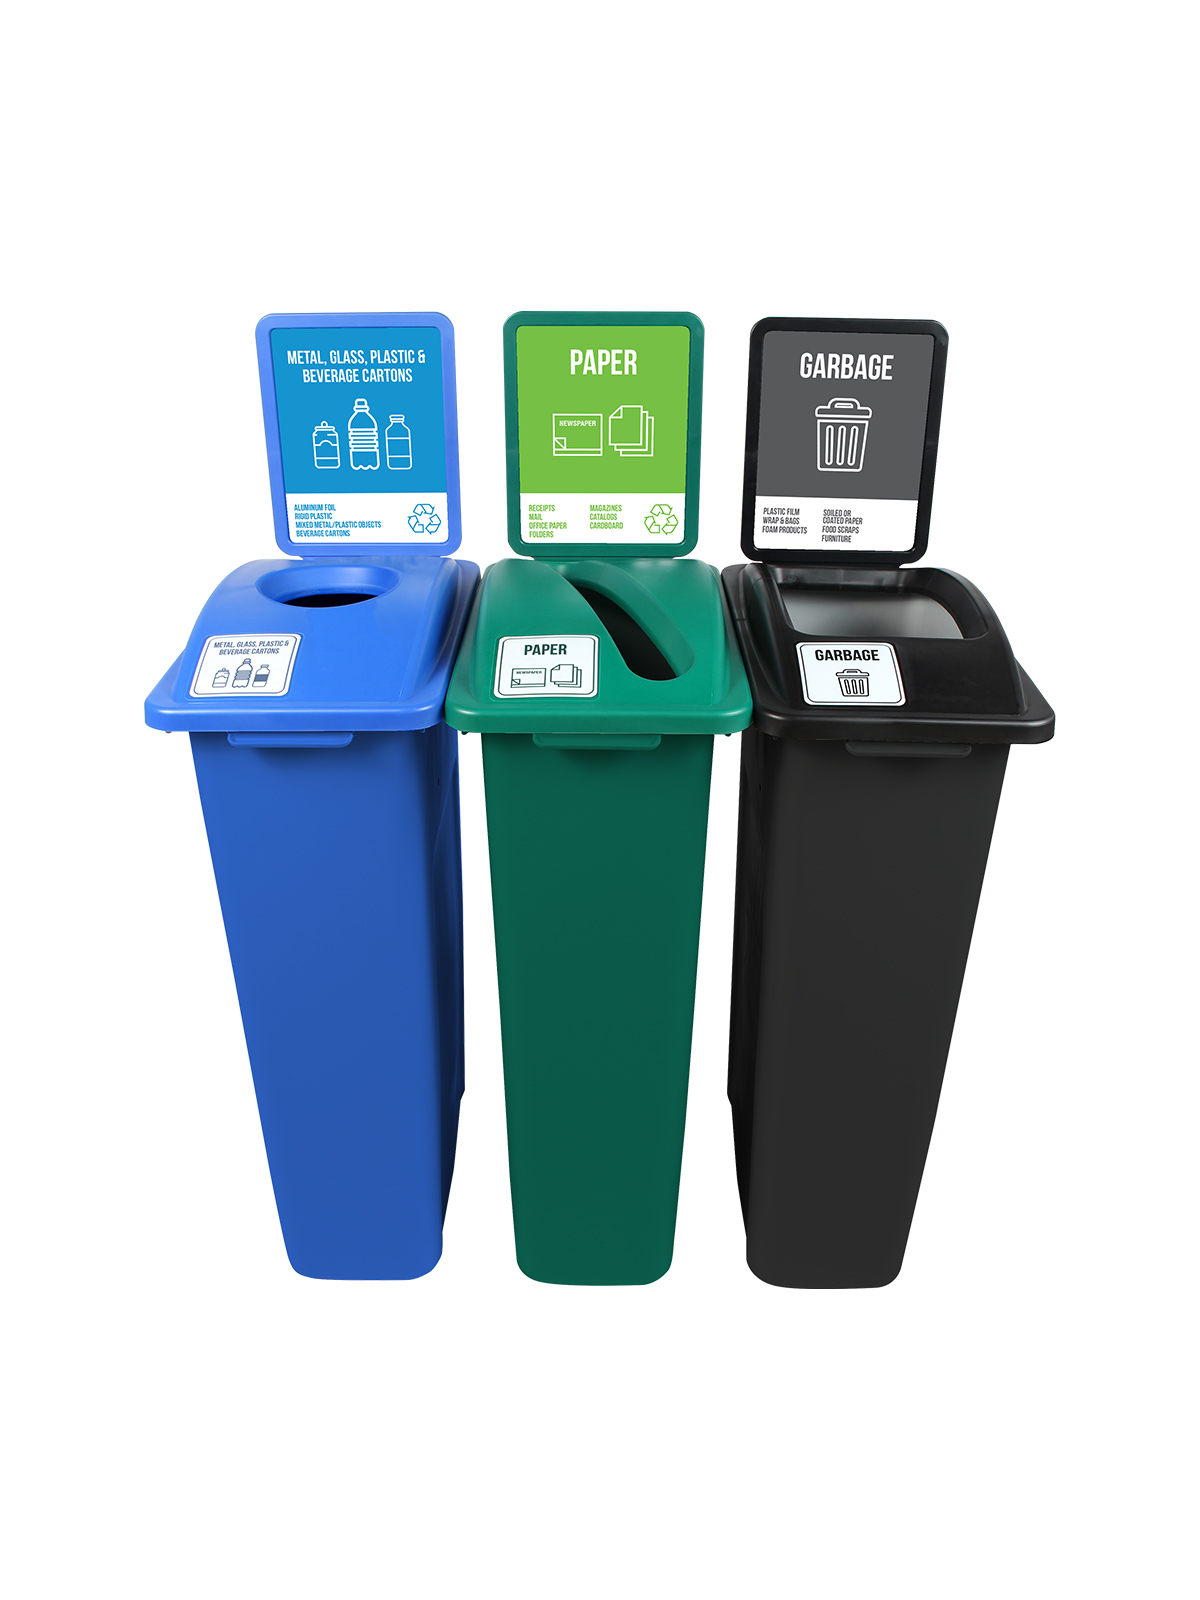 WASTE WATCHER - Triple - New York City Compliant - Metal, Glass, Plastic & Beverage Containers-Paper-Garbage - Circle-Slot-Full - Blue-Green-Black title=